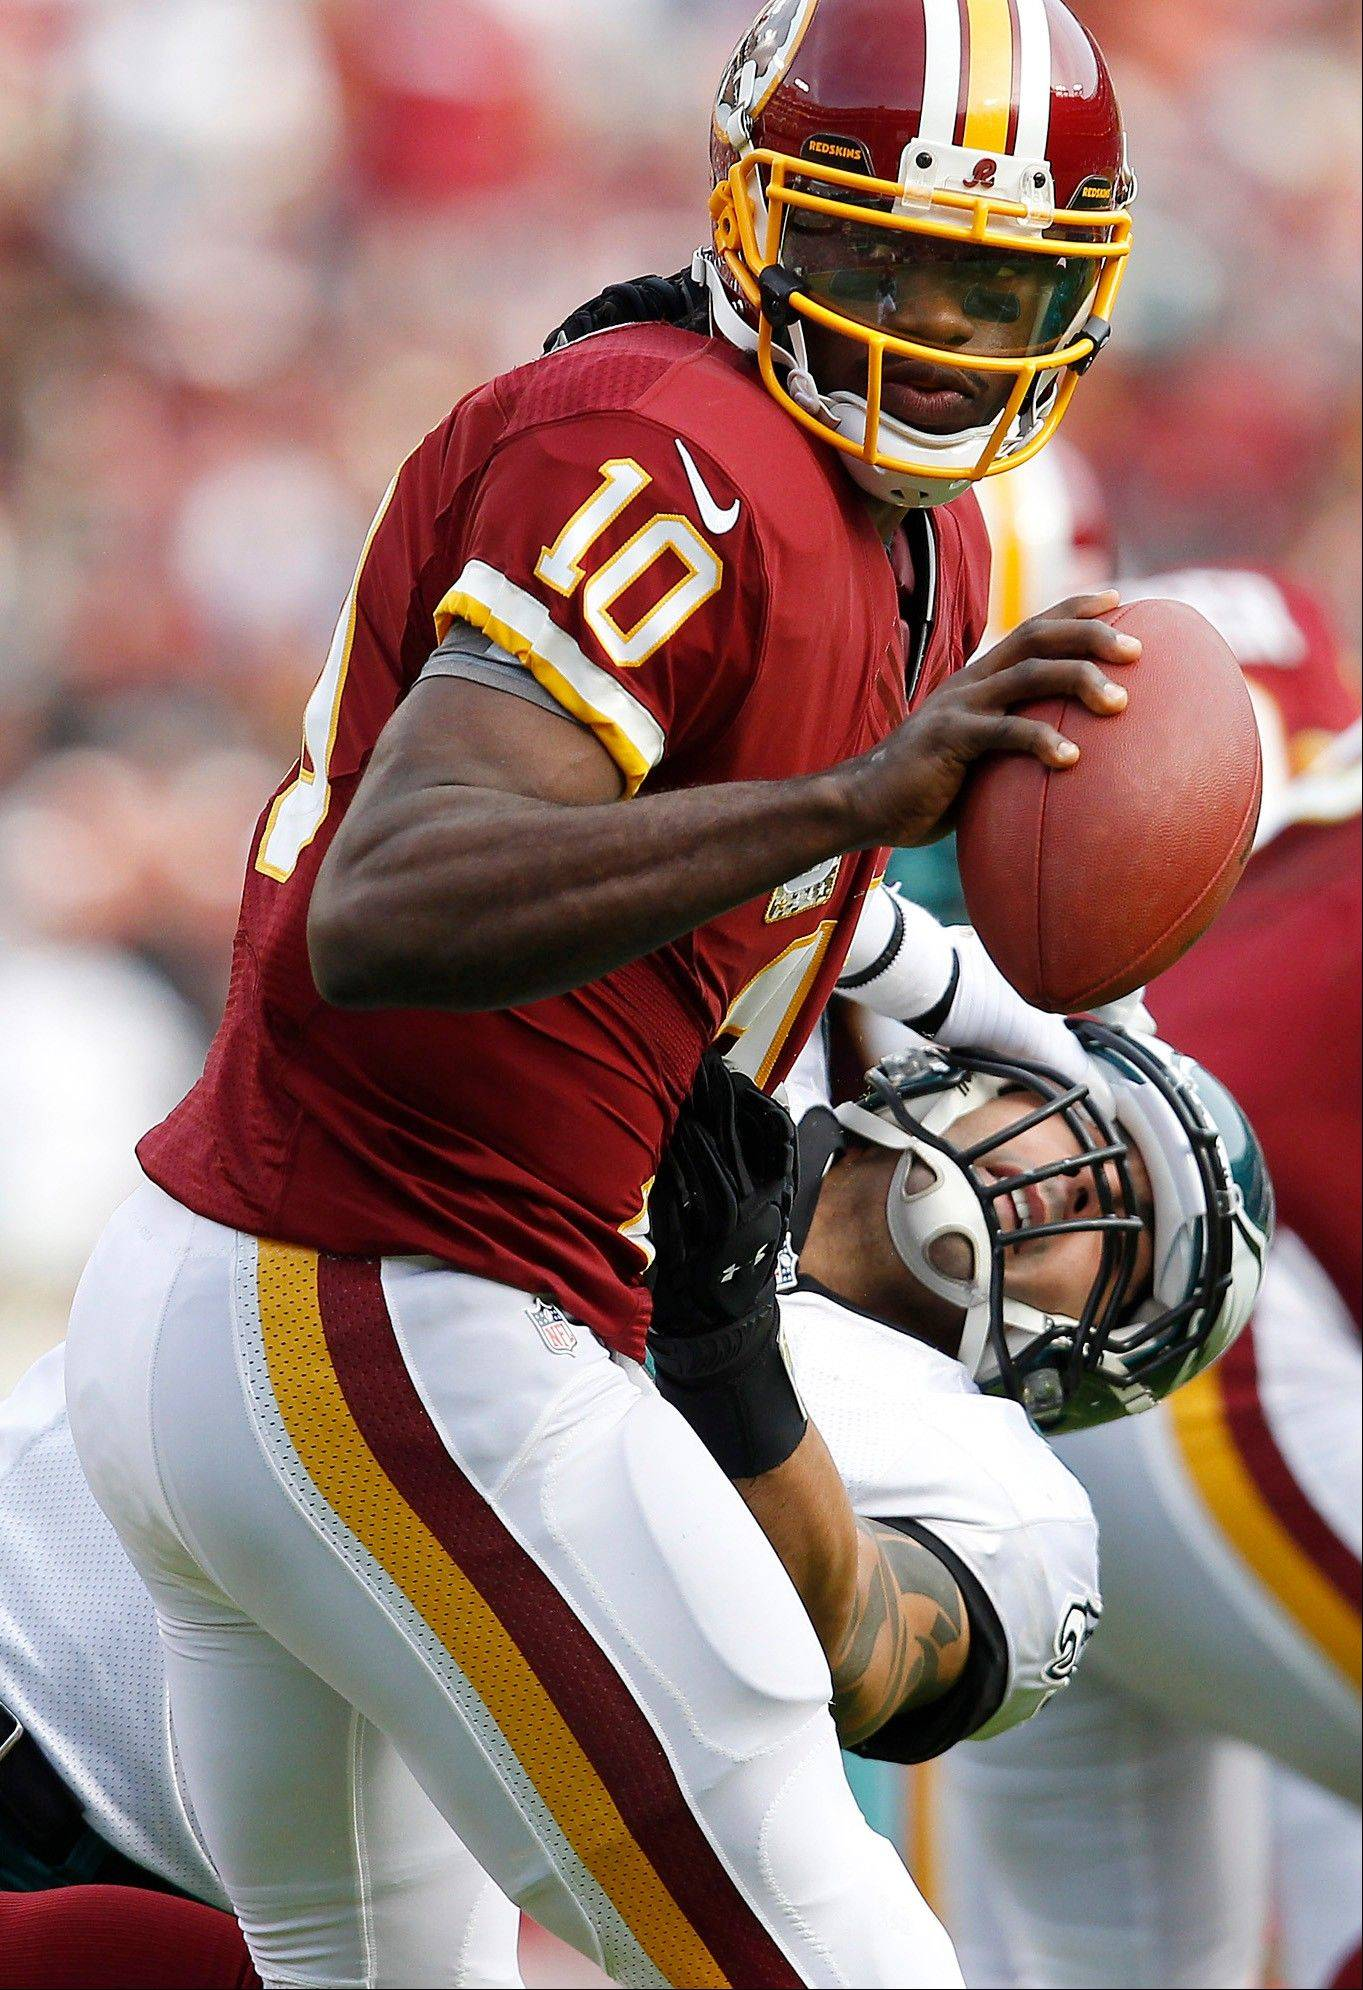 Eagles' Jason Babin, right, is stiff-armed by the Redskins' Robert Griffin III during the 2nd quarter as the Philadelphia Eagles play the Washington Redskins at FedEx Field in Landover, MD, Sunday.